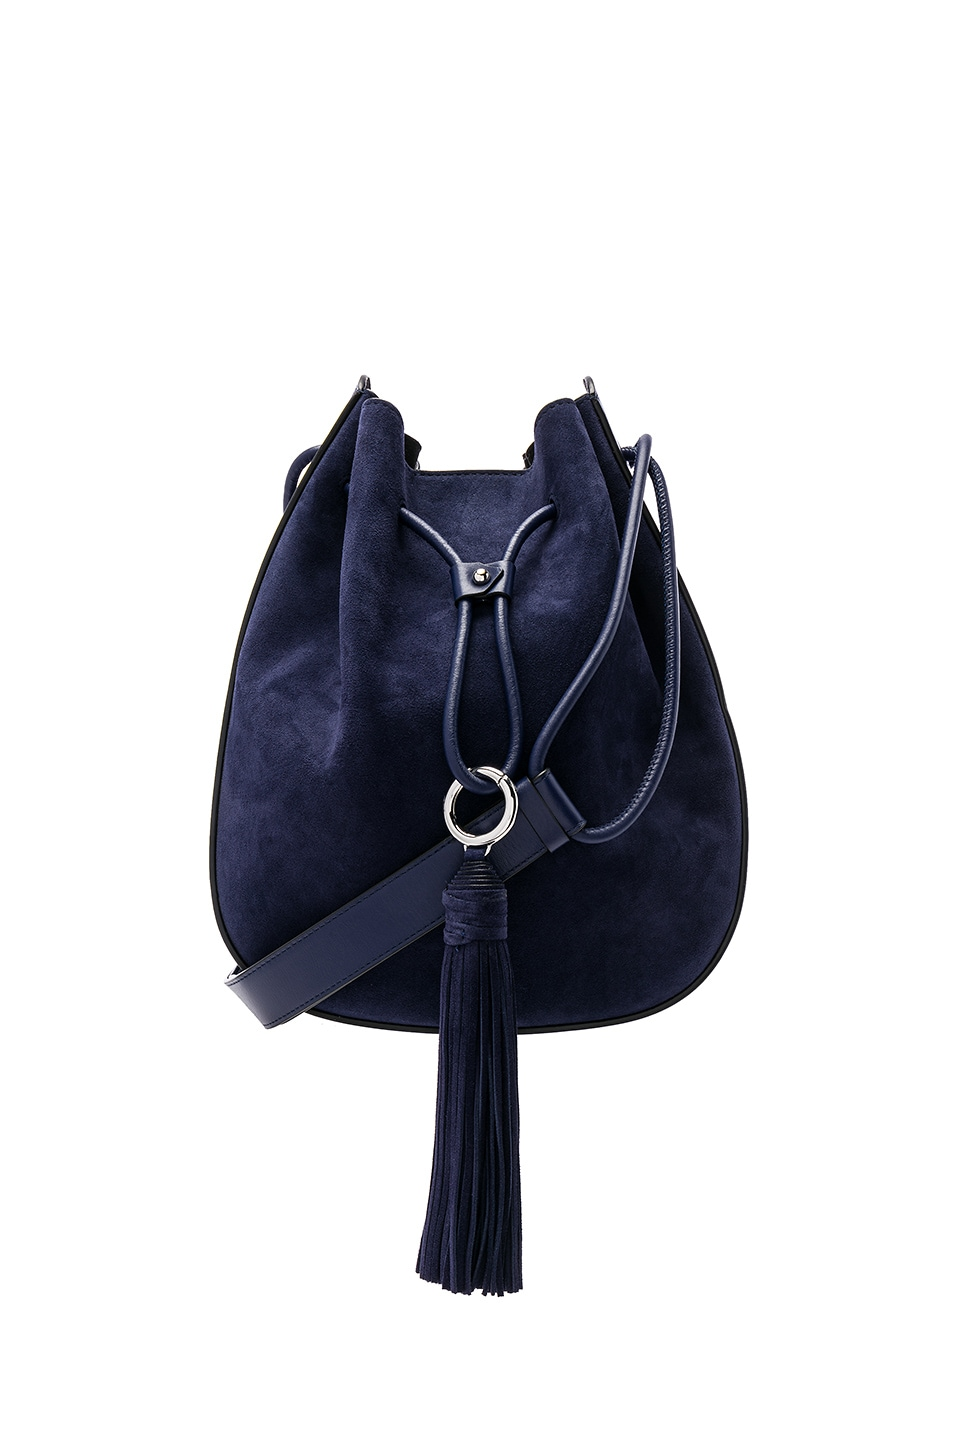 Rebecca Minkoff Lulu Shoulder Bag in Twilight